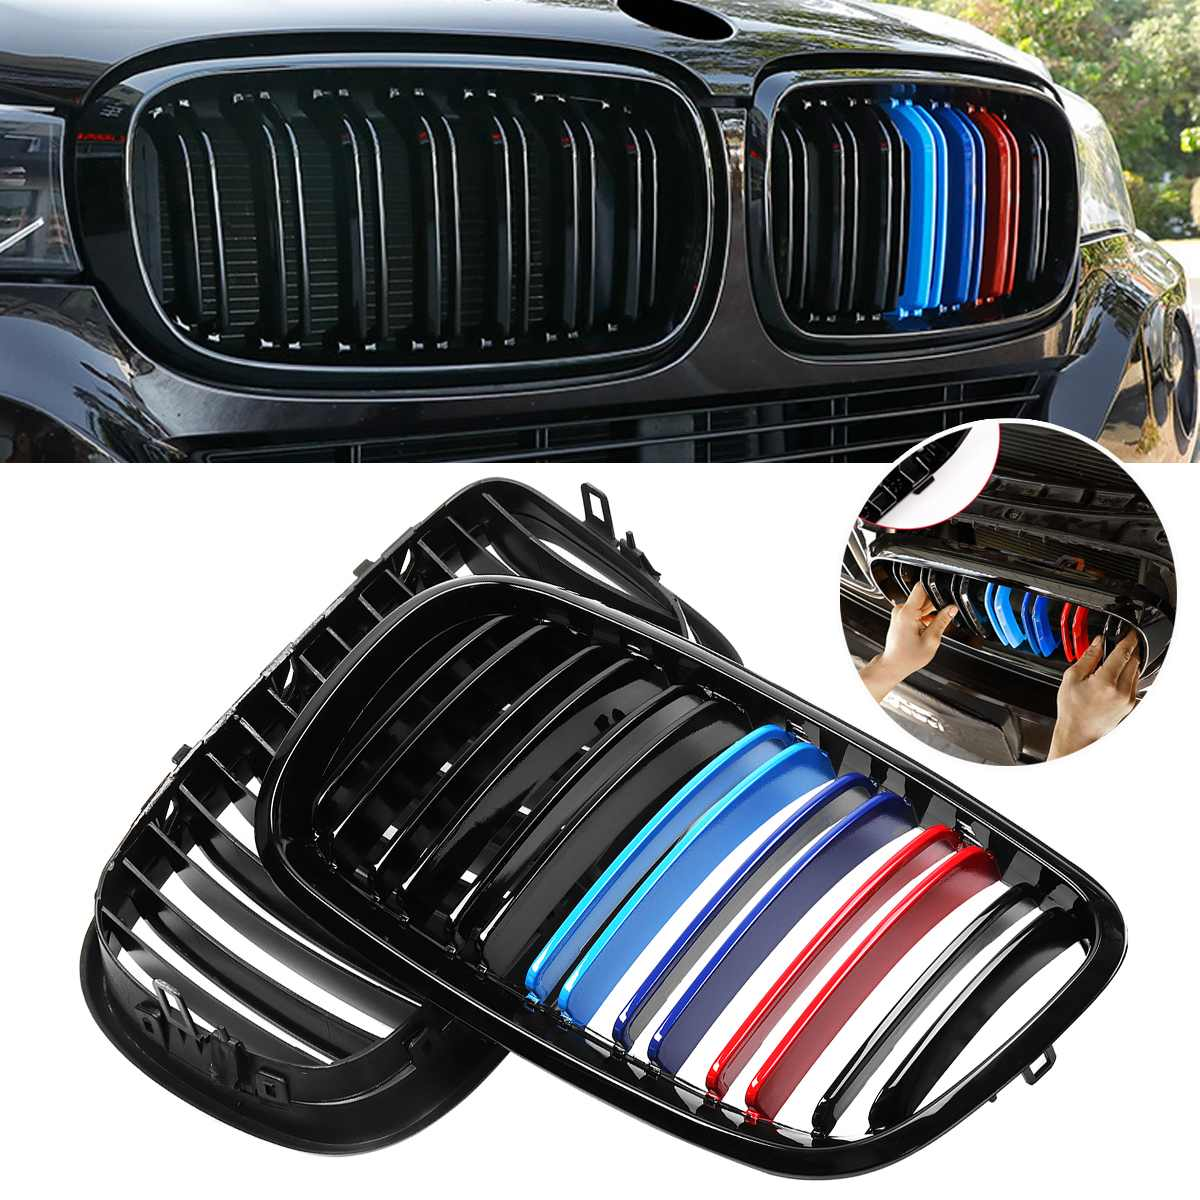 A Pair Car Front Bumper Grille Grill Cover Trim Kidney For 2007 2013 For BMW X5 X6 E70 E71 Glossy Black M Color